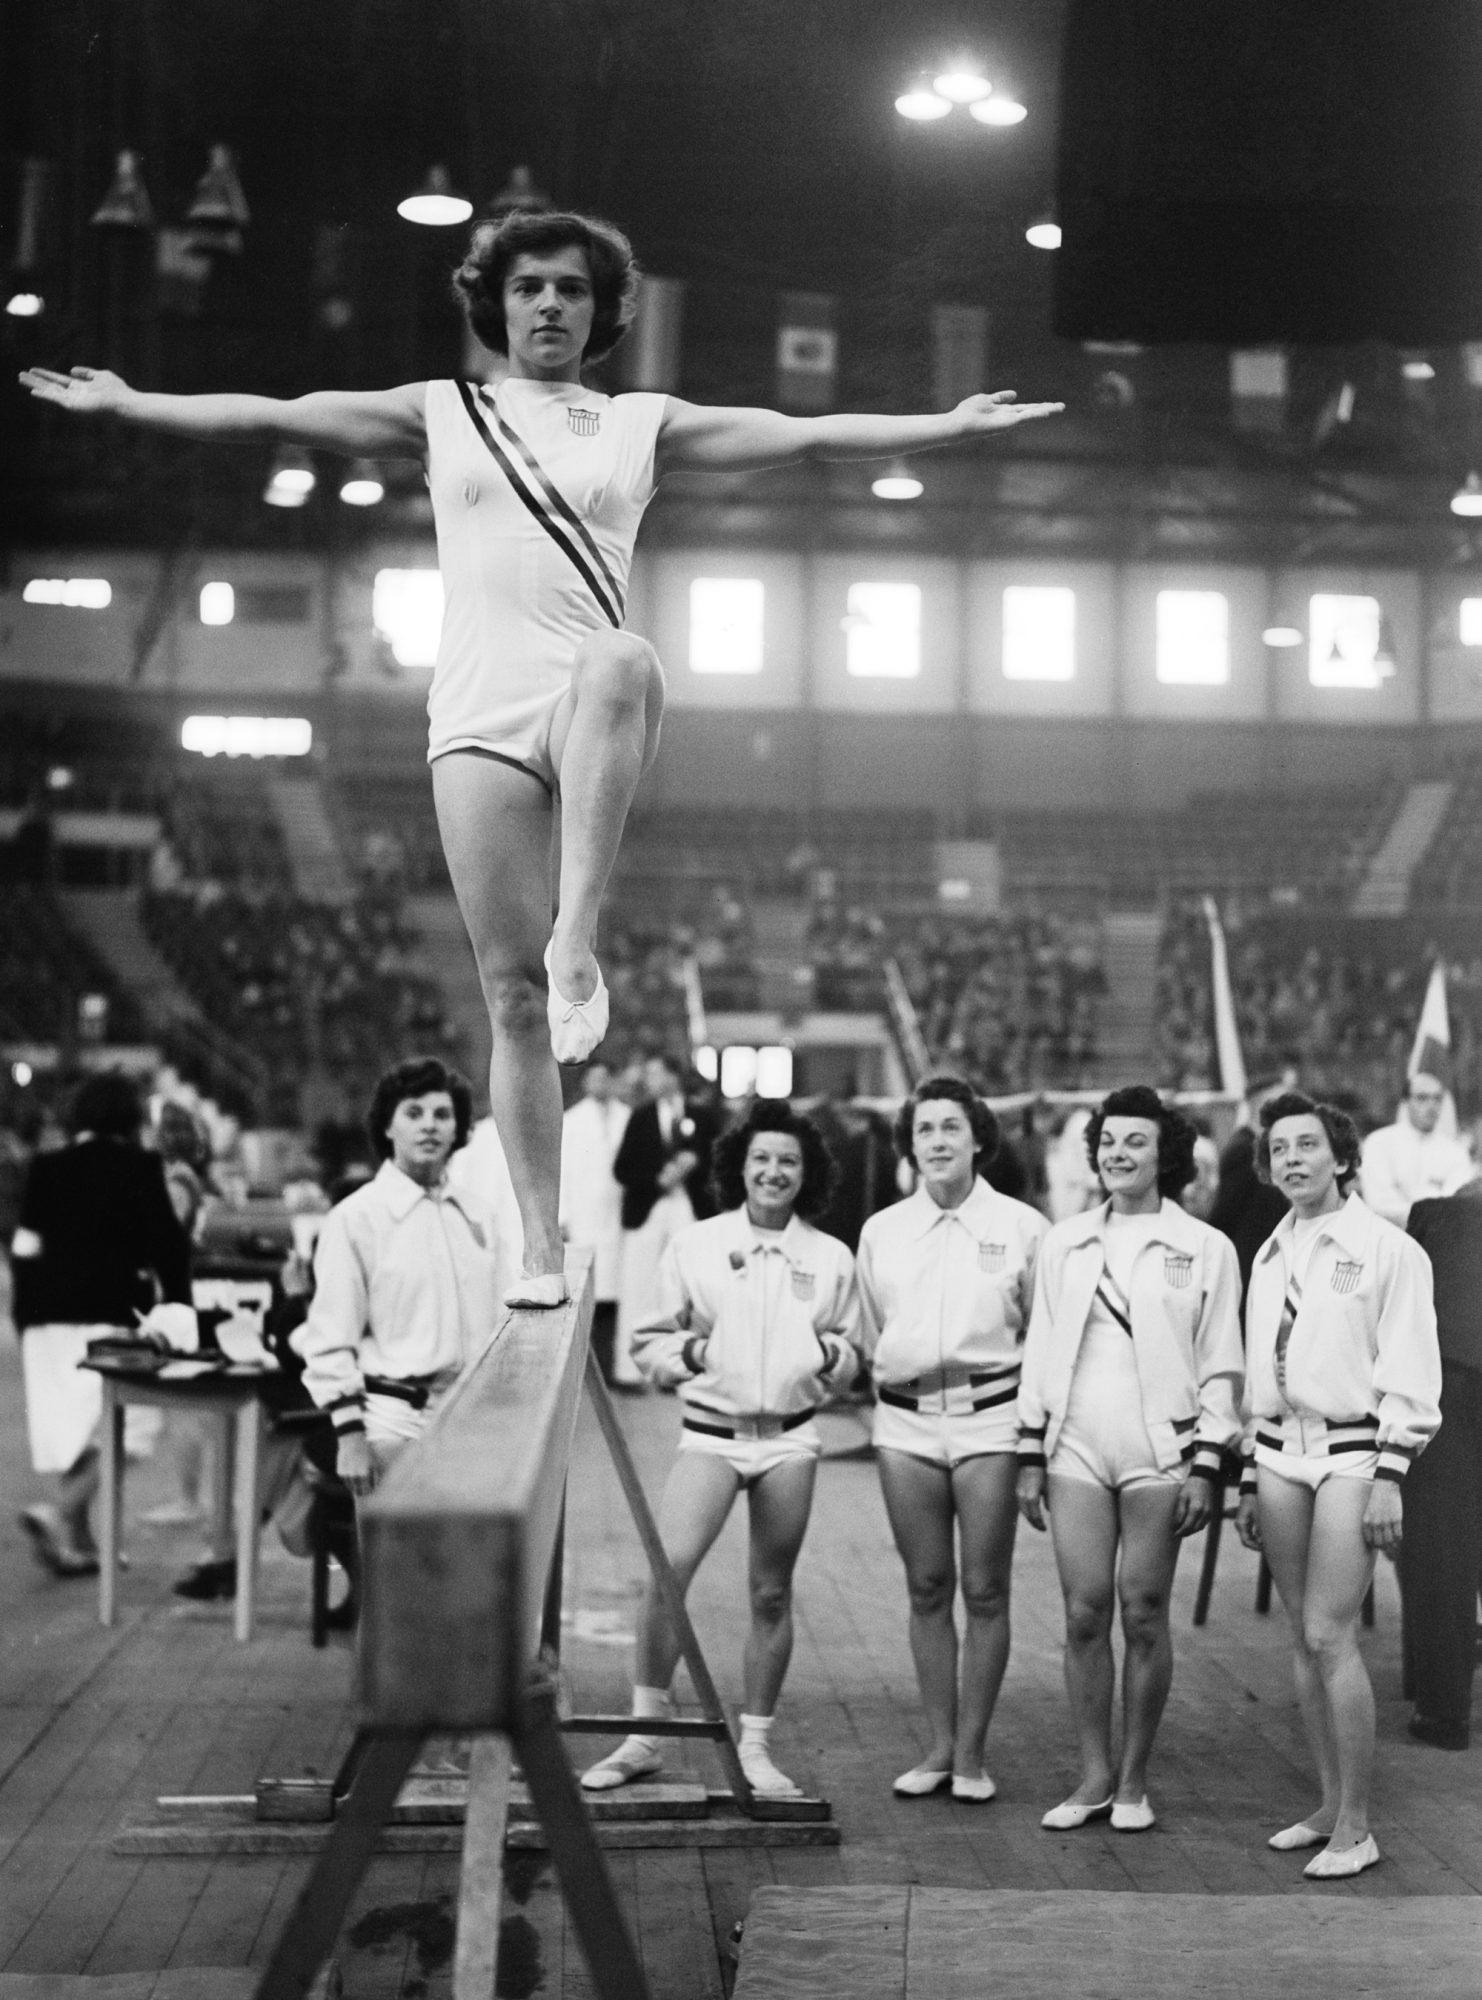 1948 London Olympics, Marian Barone